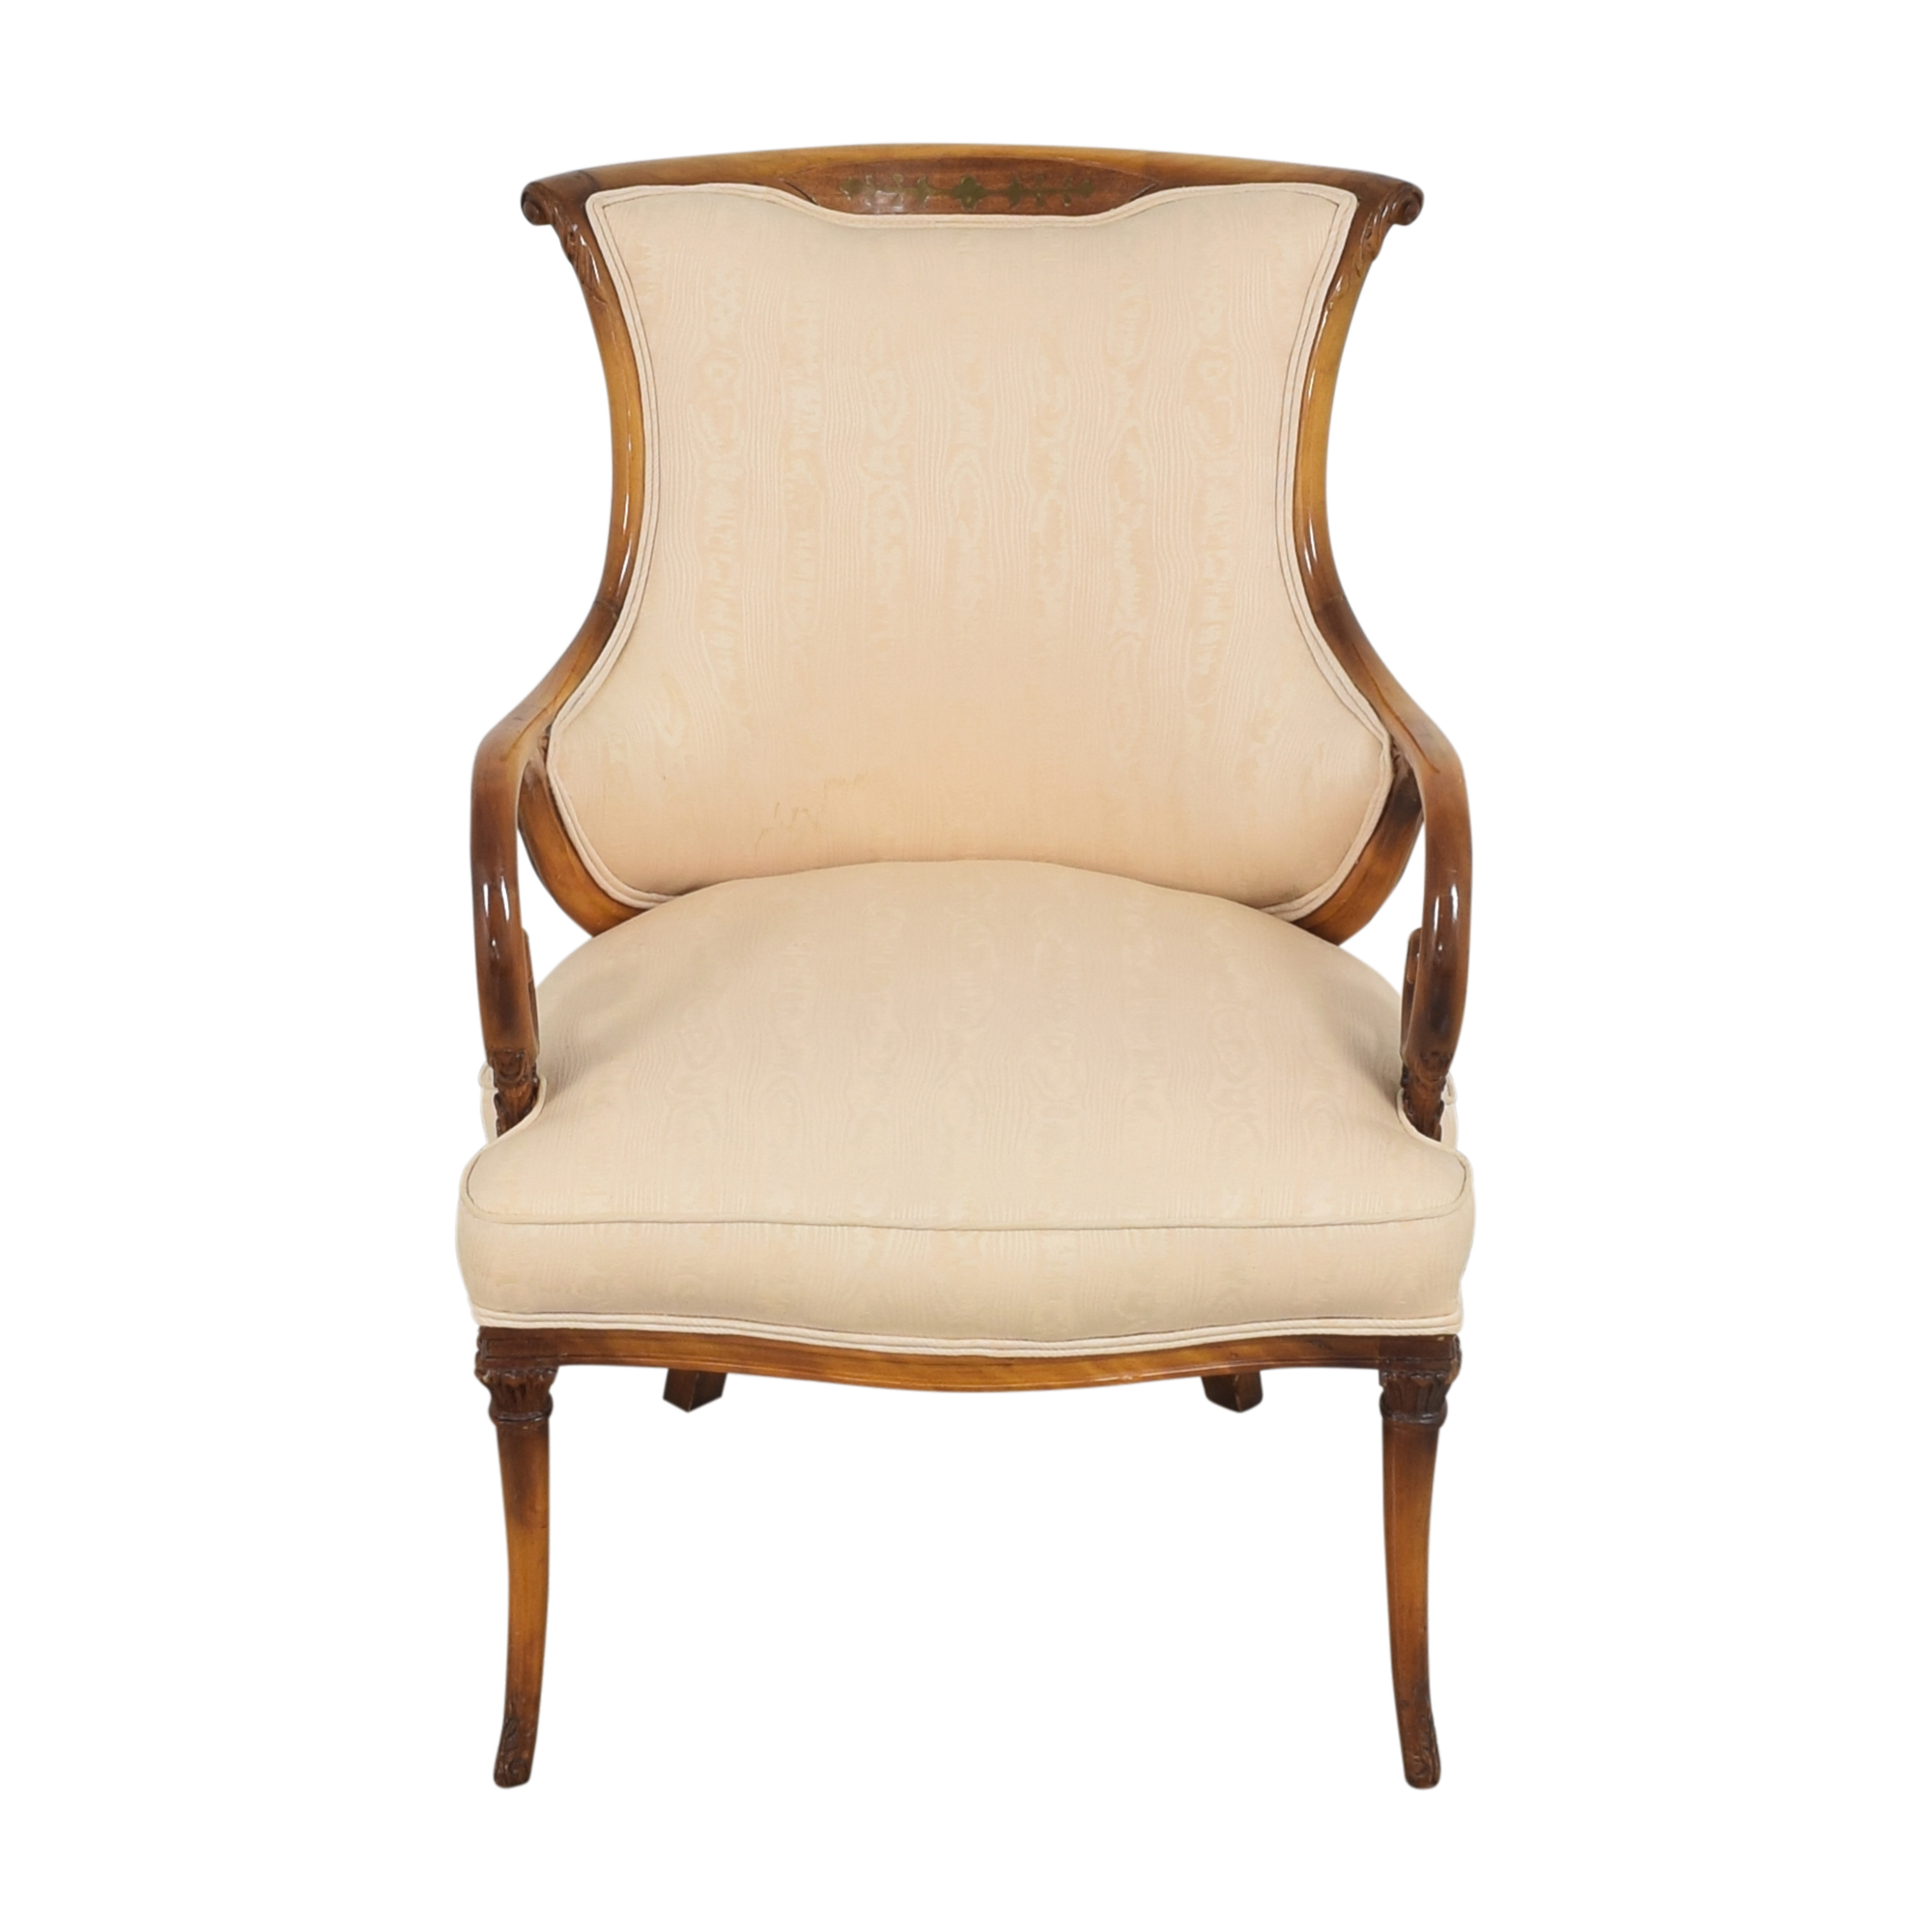 Decorative Upholstered Arm Chair Chairs